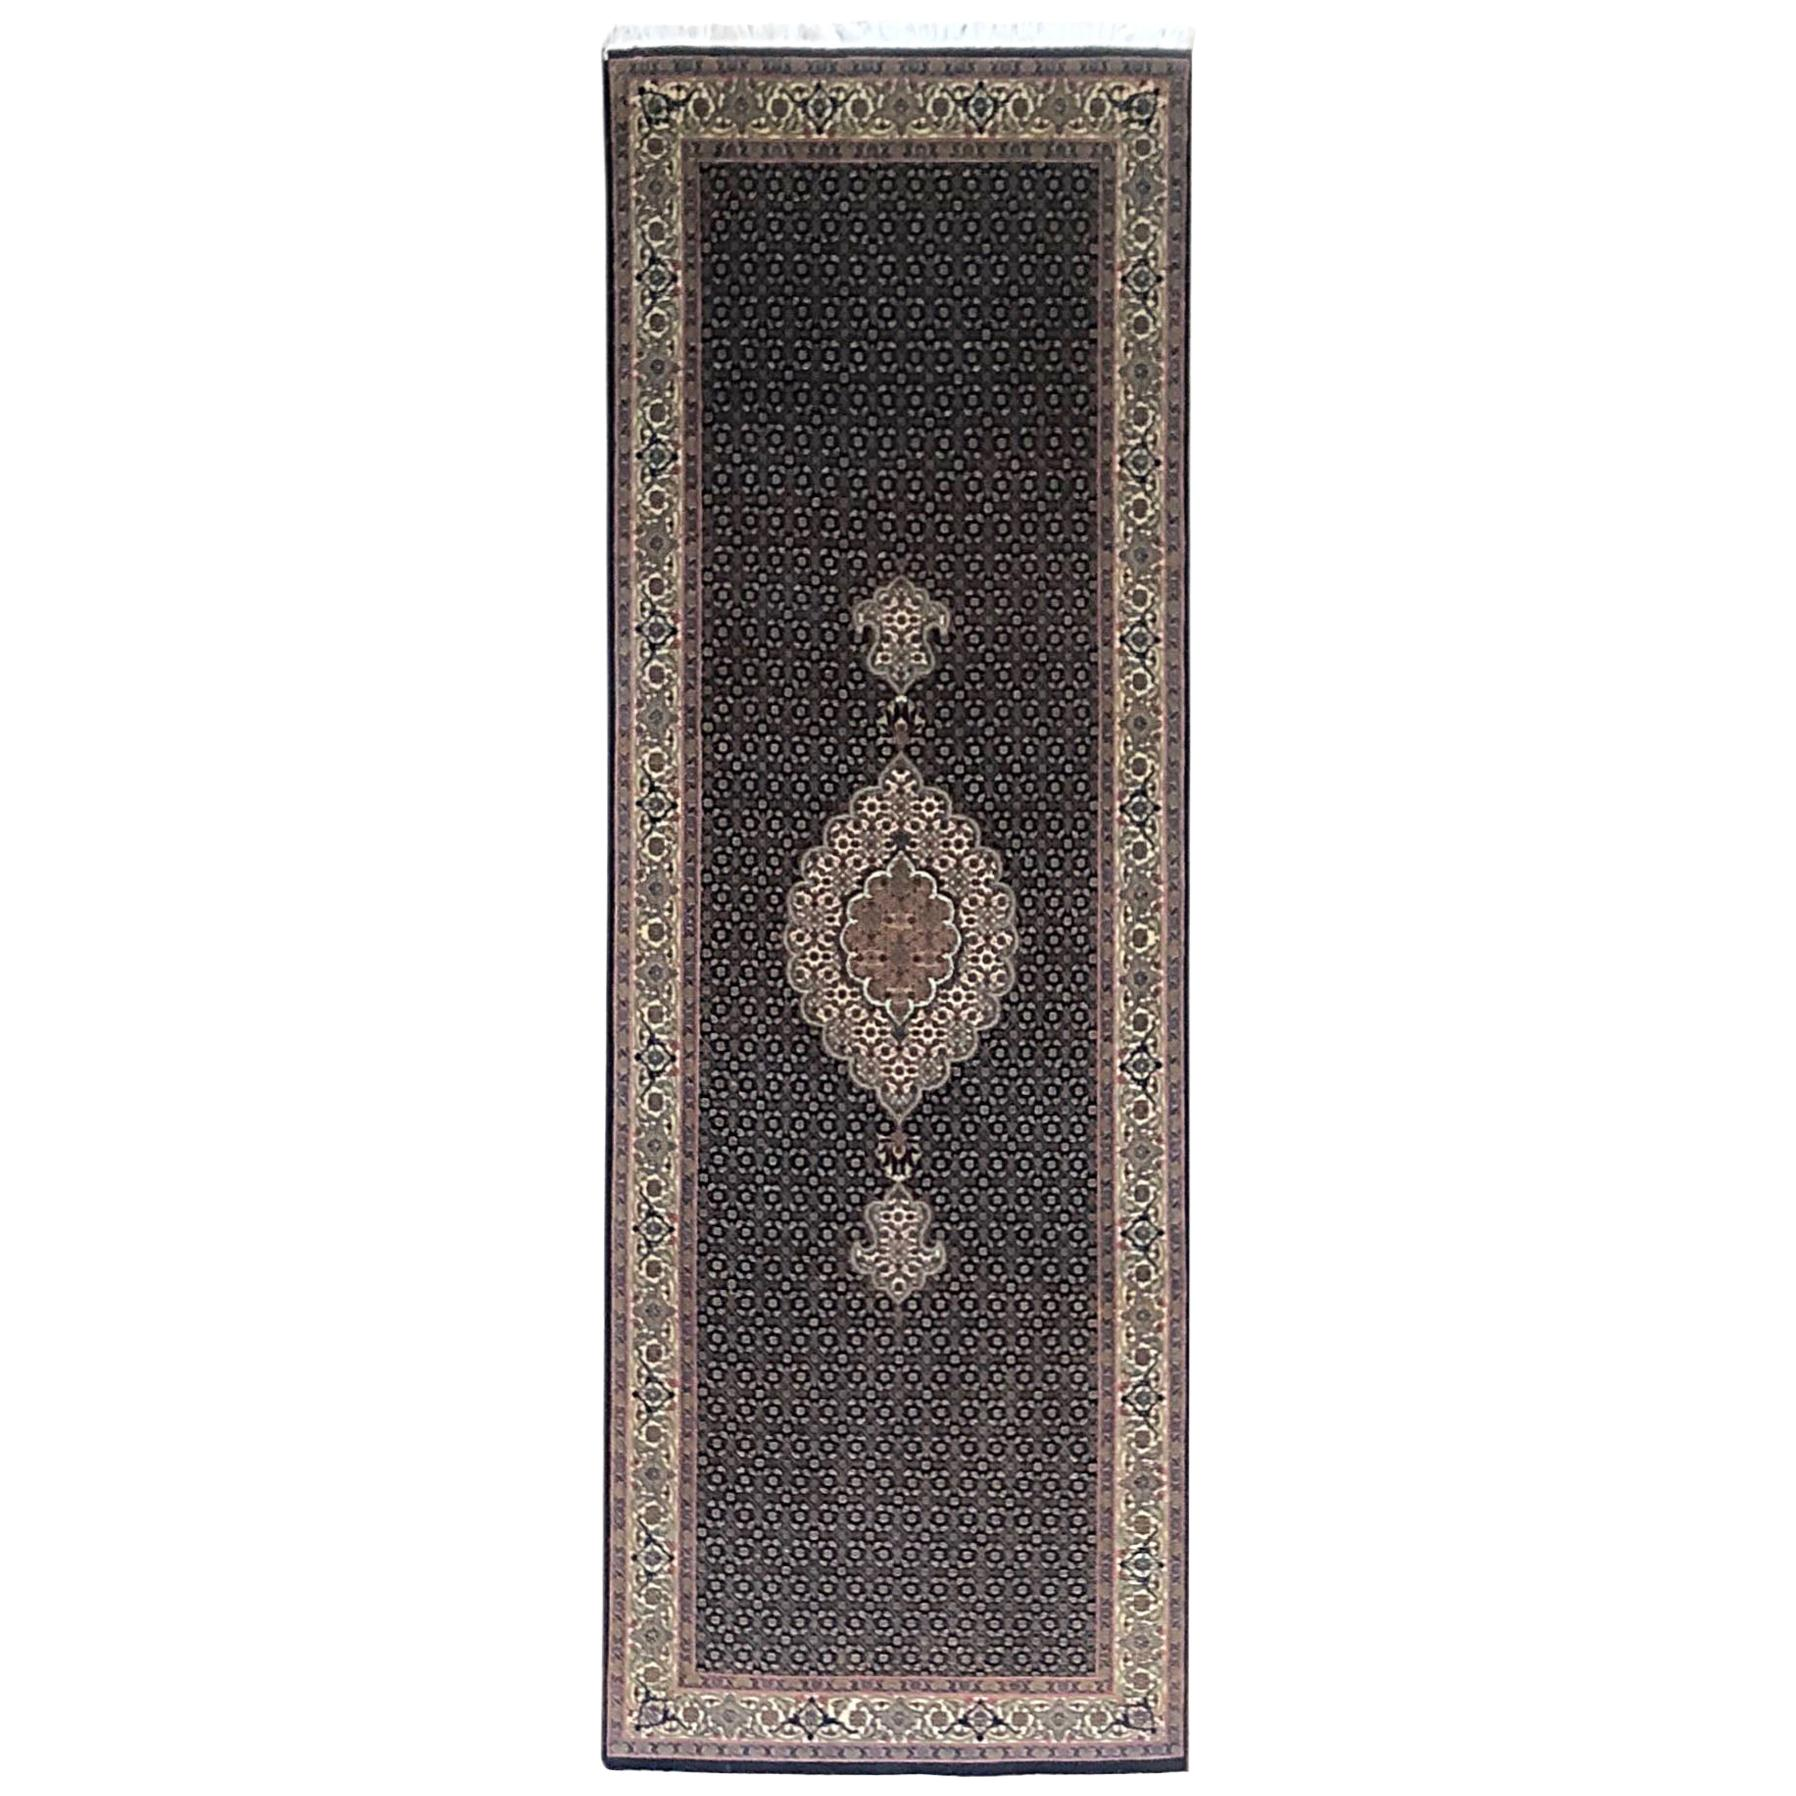 Authentic Persian Hand Knotted Medallion Fish Design 'Mahi' Tabriz Runner Rug